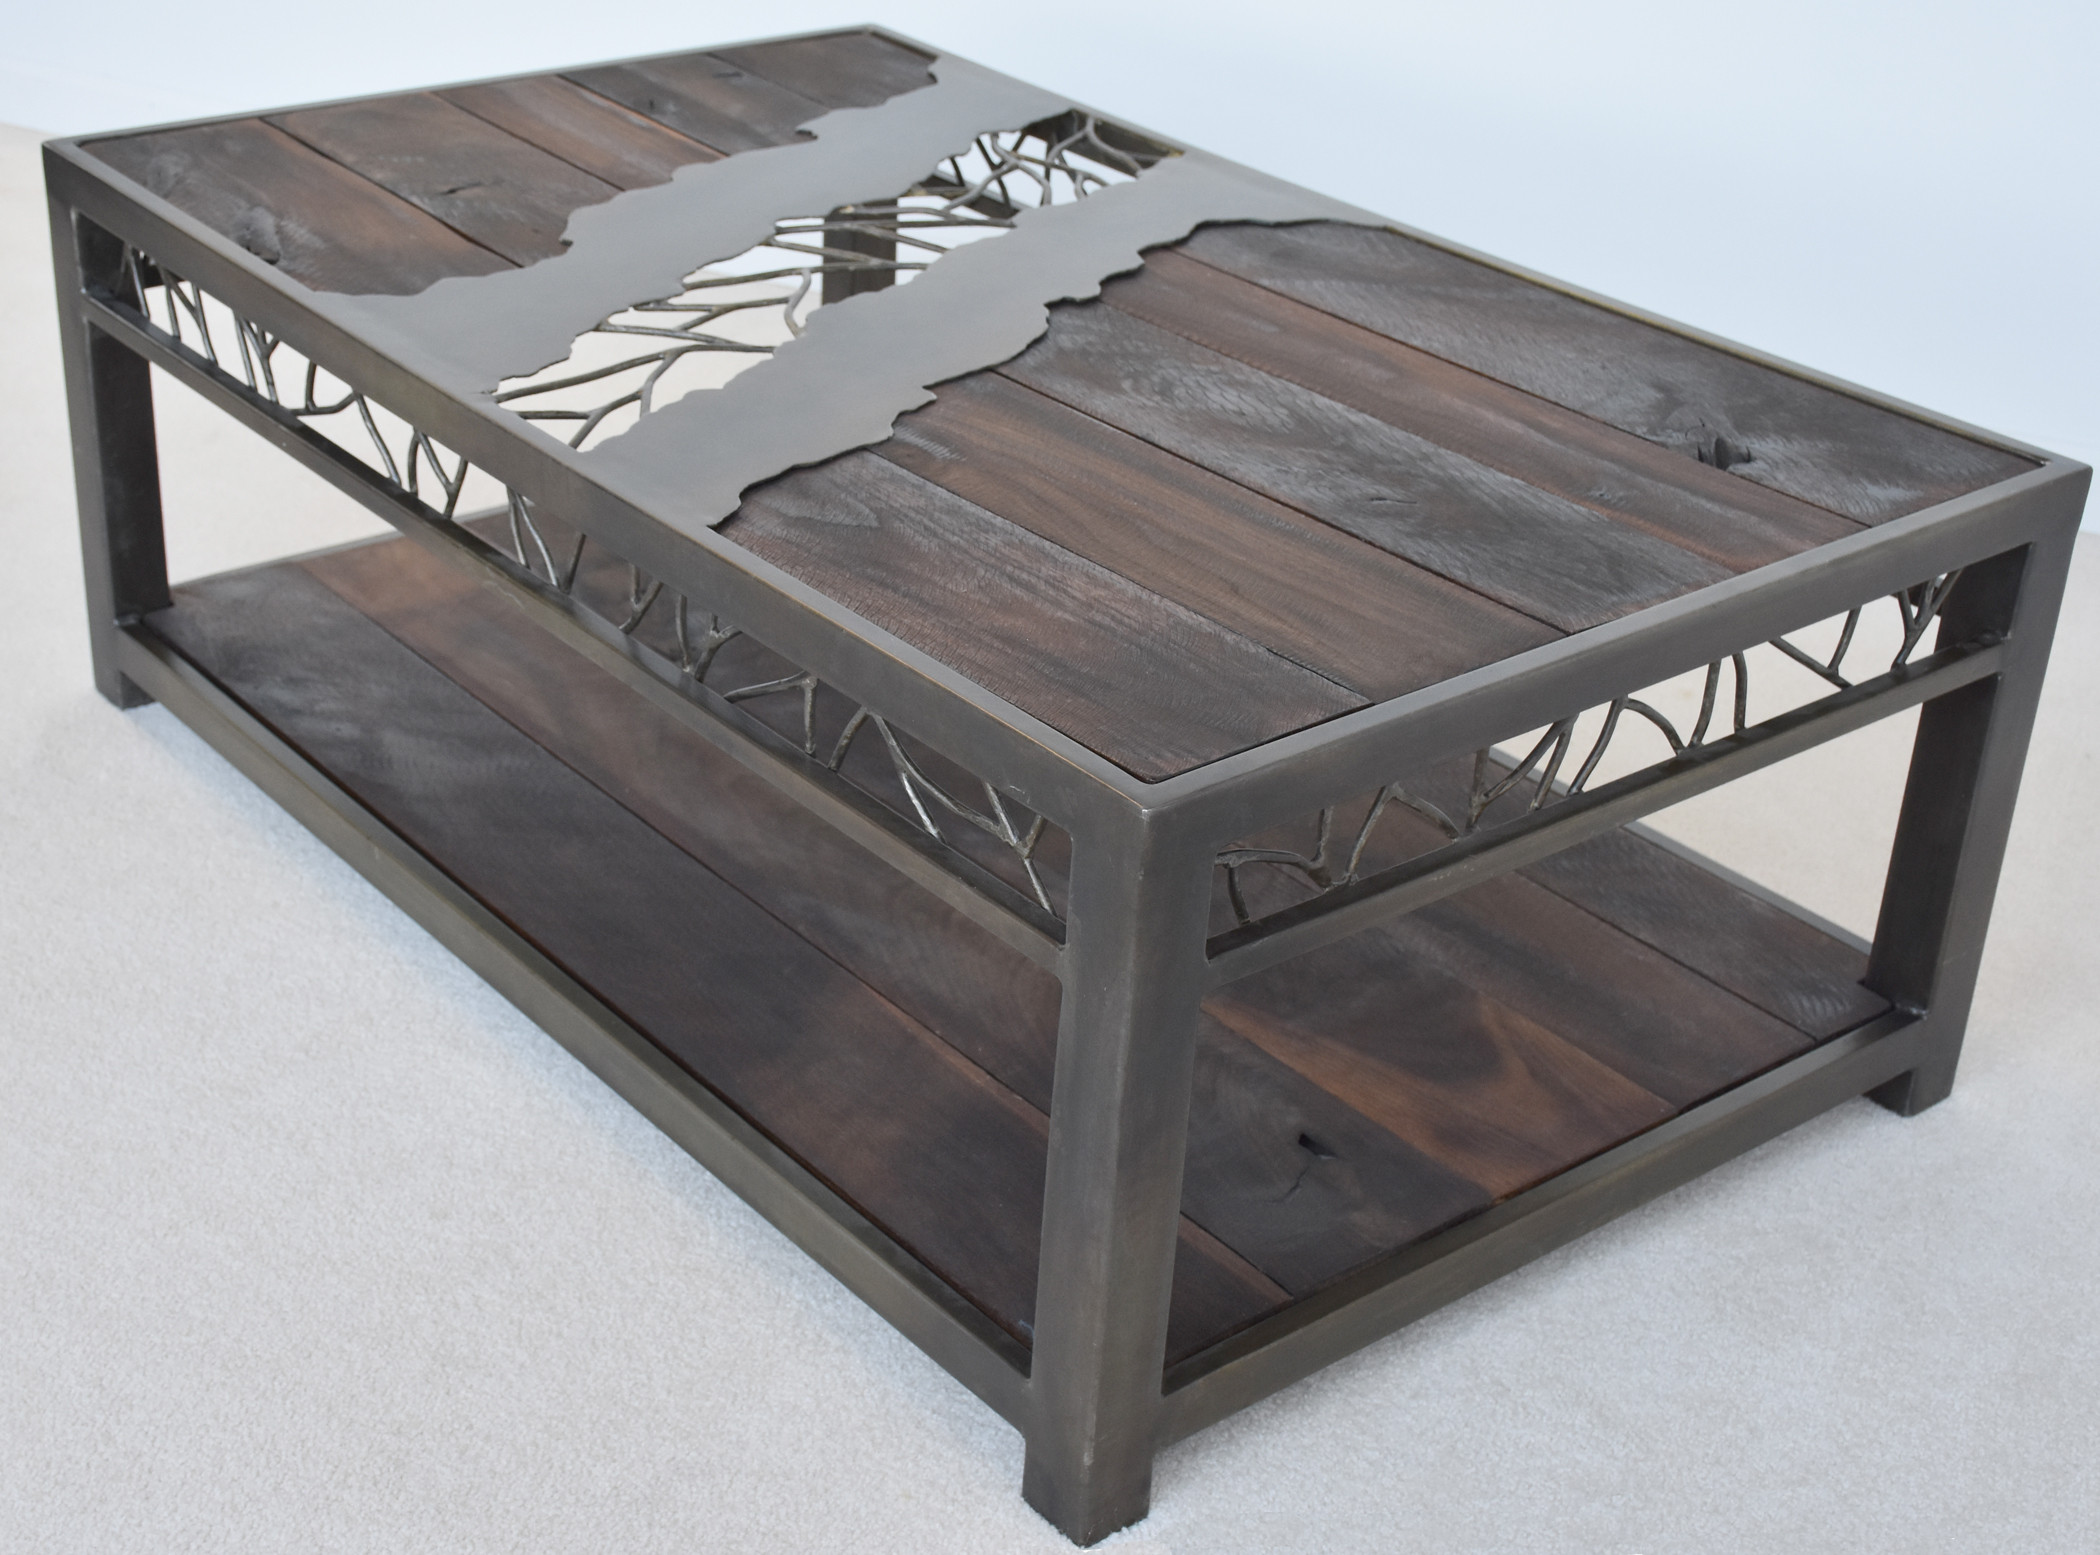 Nollette Metal Works Rustic Walnut And Oxidized Metal Coffee Table